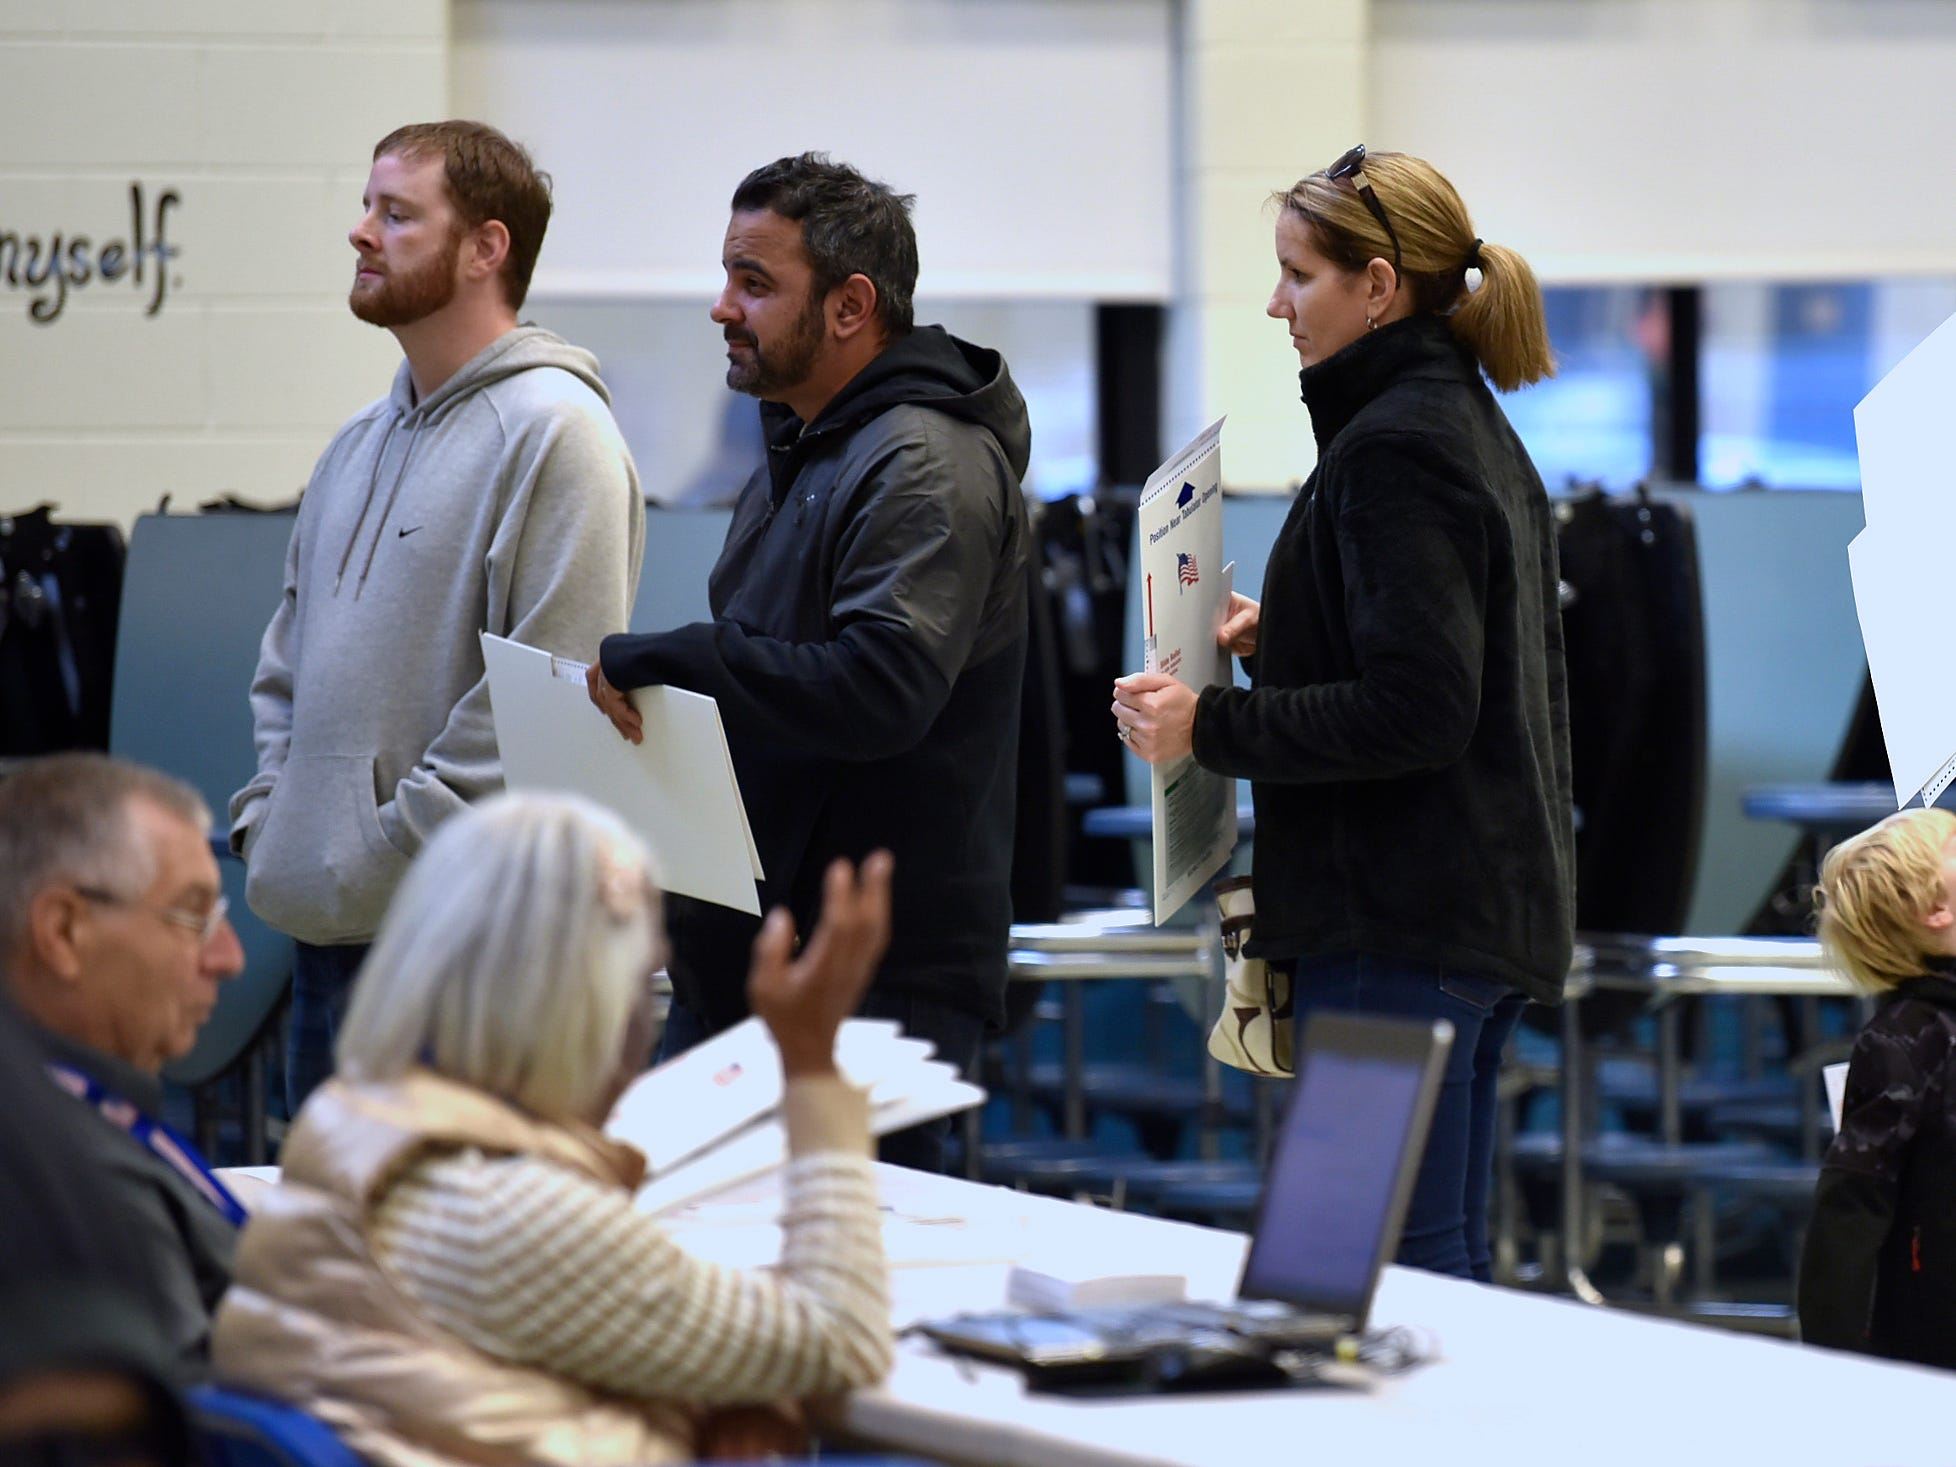 Voters cast their ballots at Macomb Township Precincts 12 and 30 in the cafeteria at Ojibwa Elementary School on Tuesday.